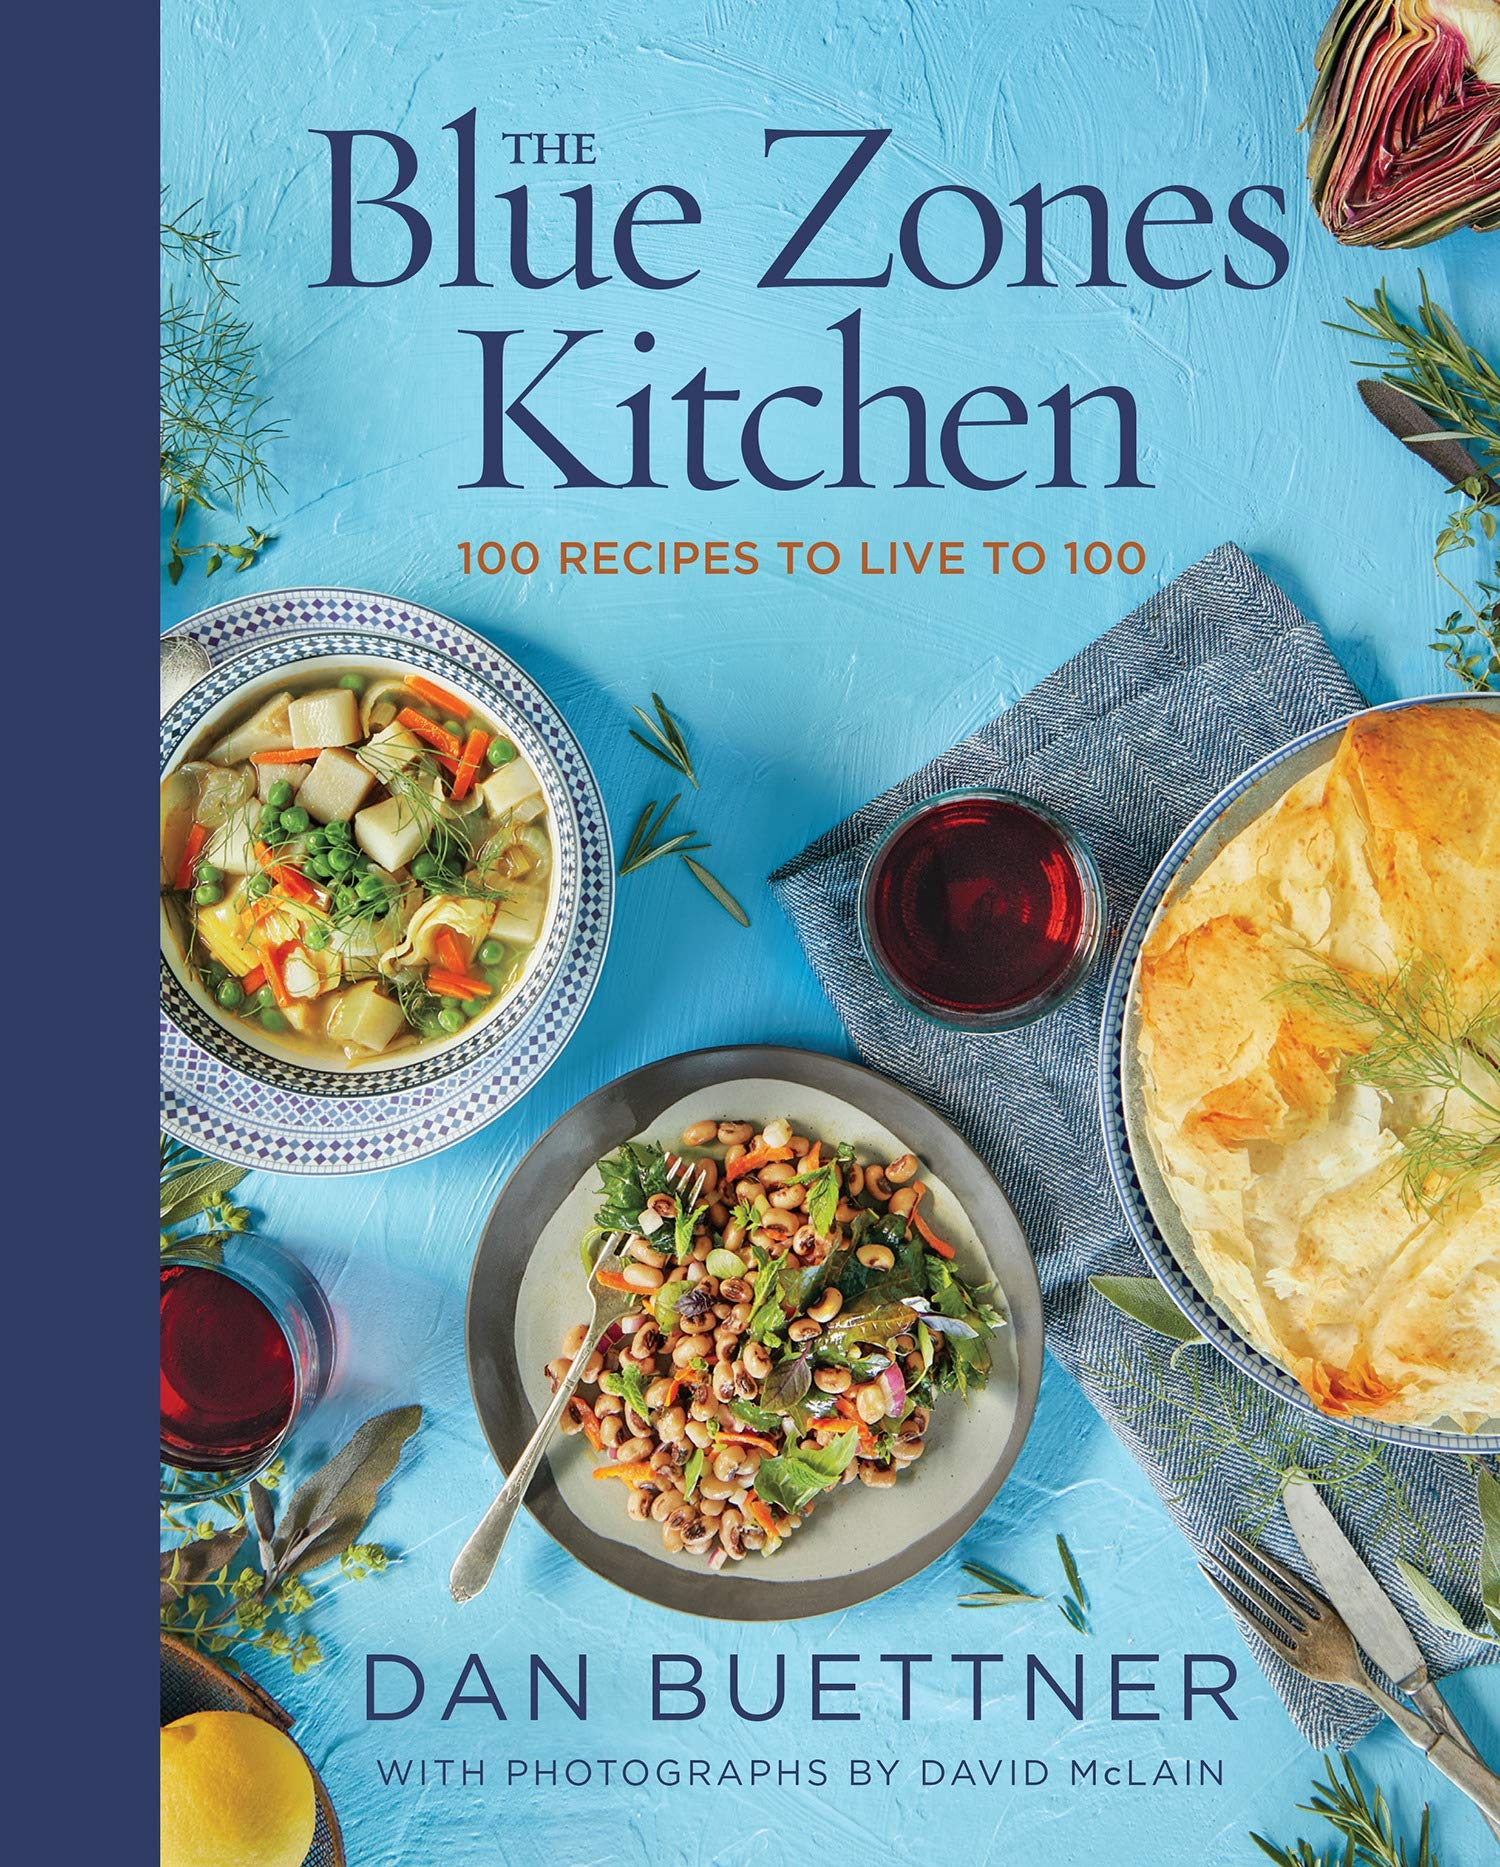 The Blue Zones Kitchen: 100 Recipes to Live to 100: Amazon.es ...